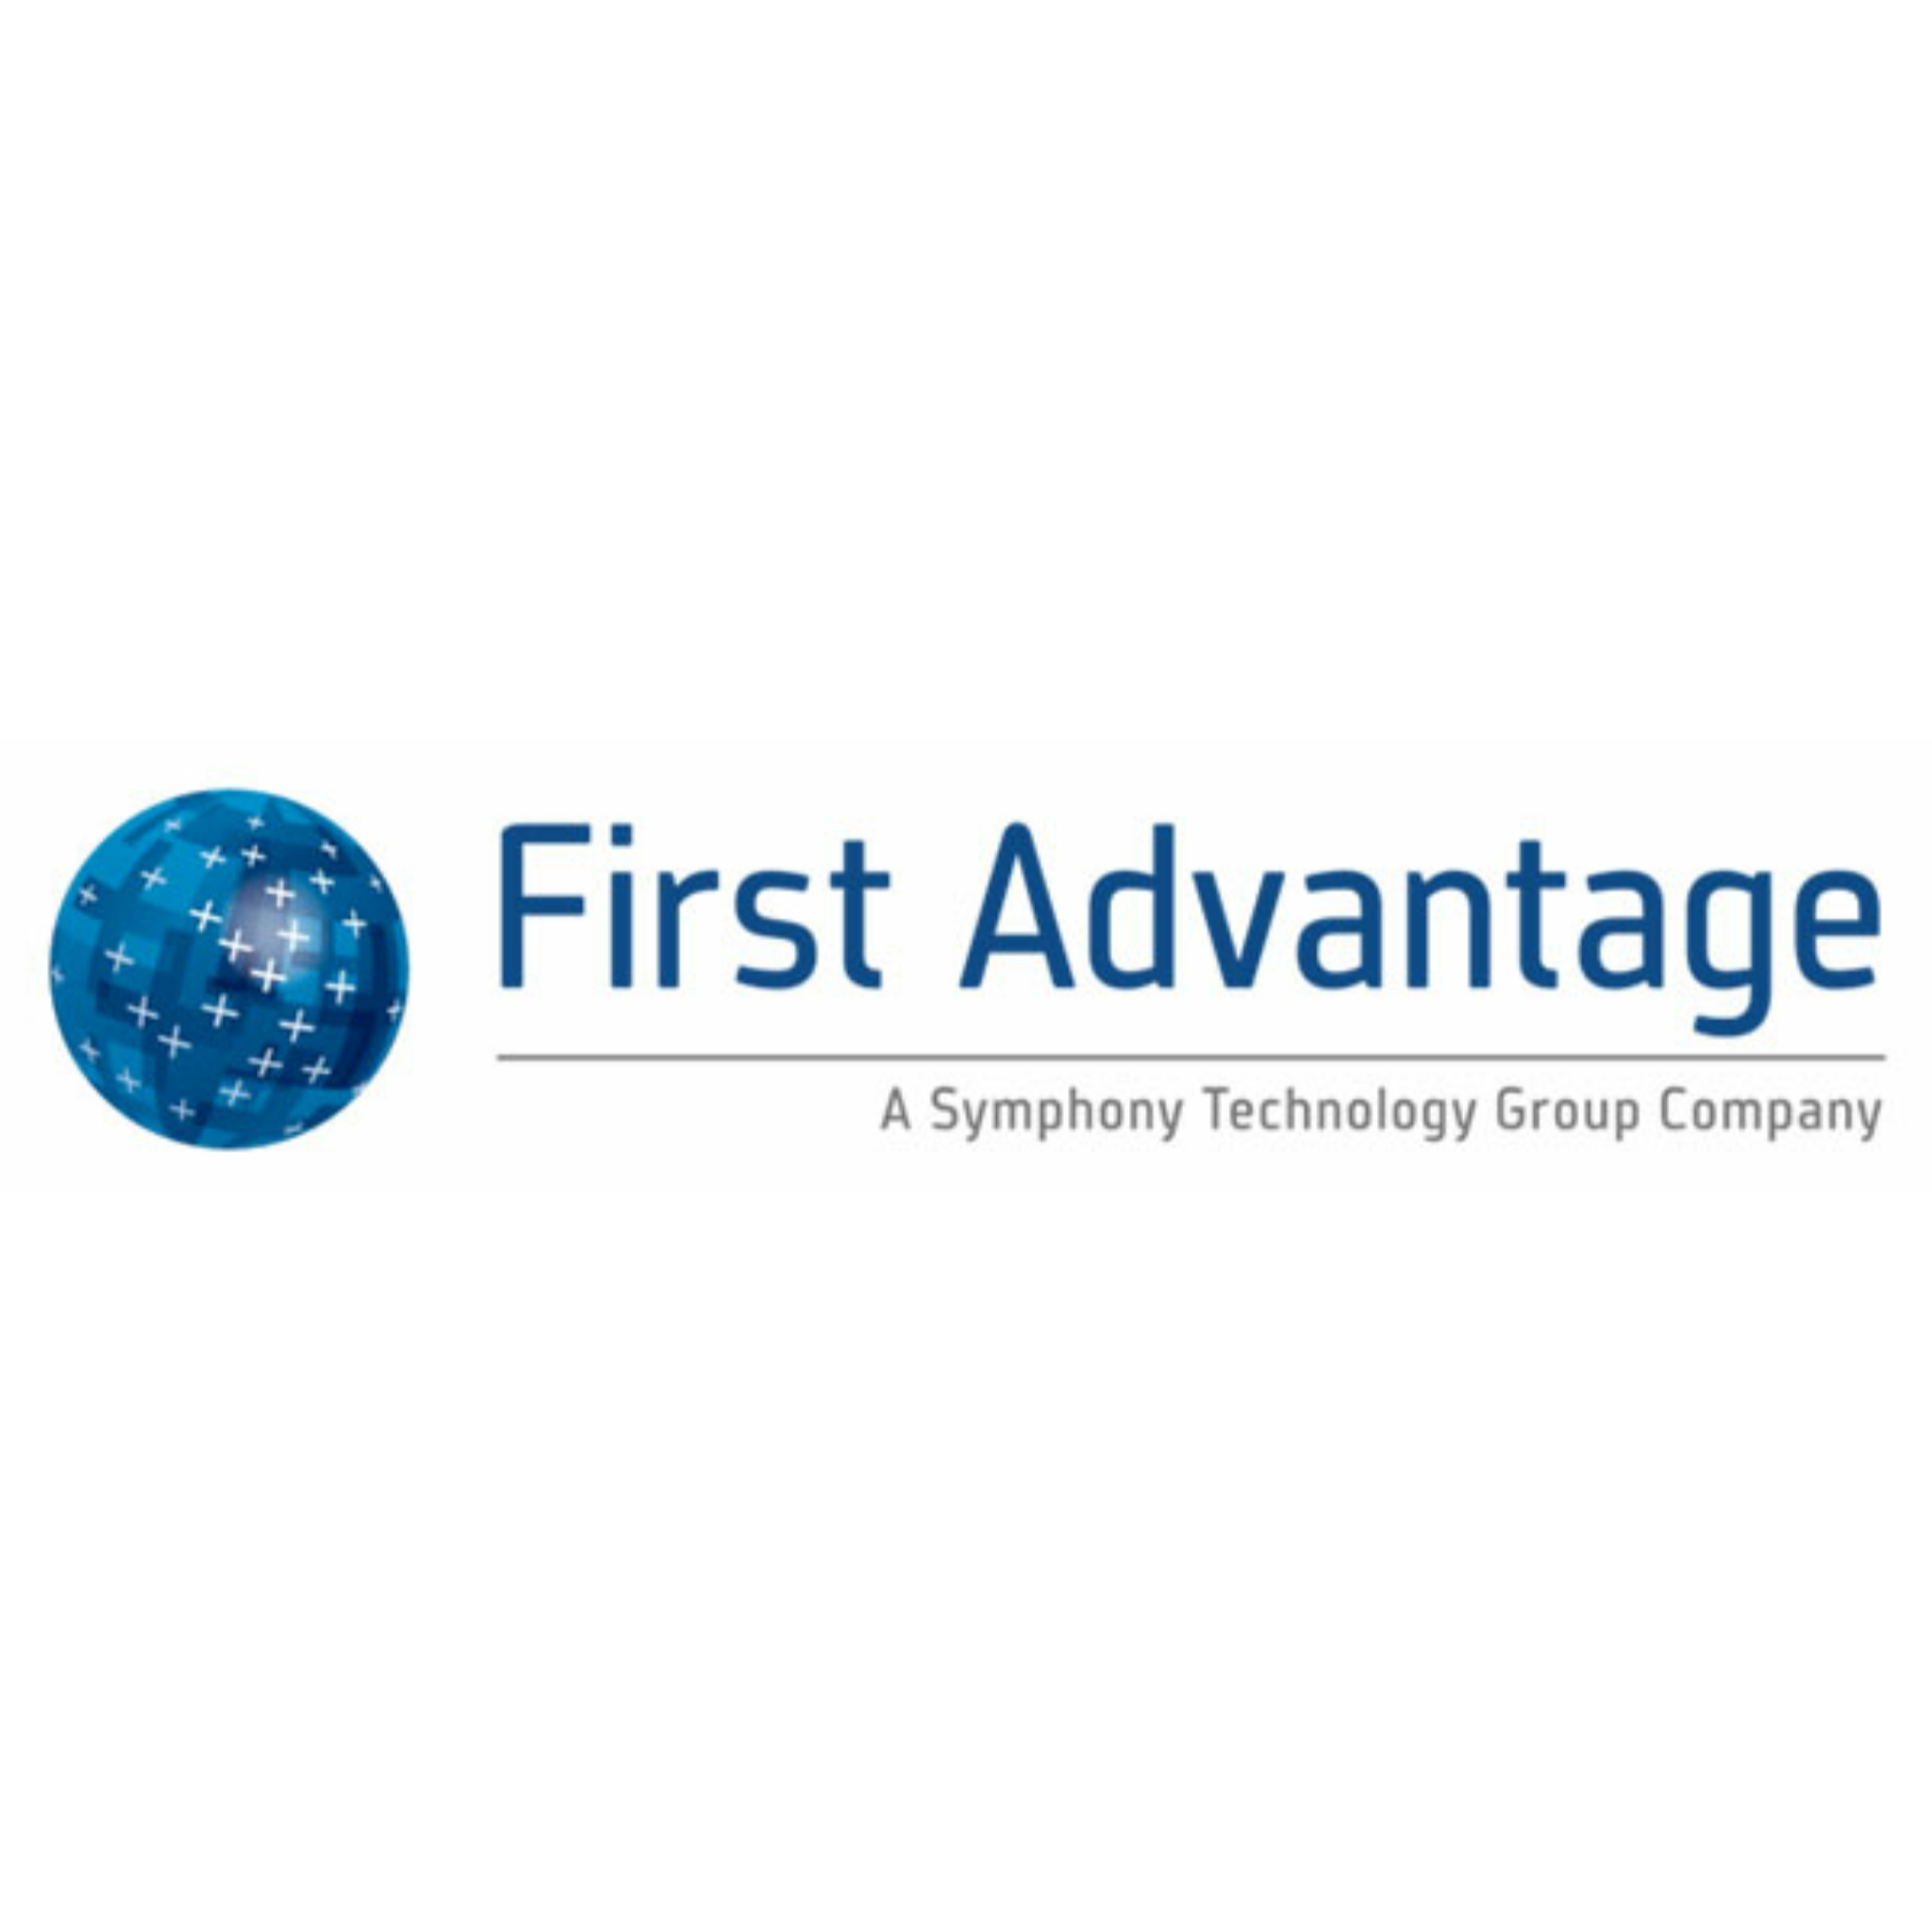 First Advantage logo